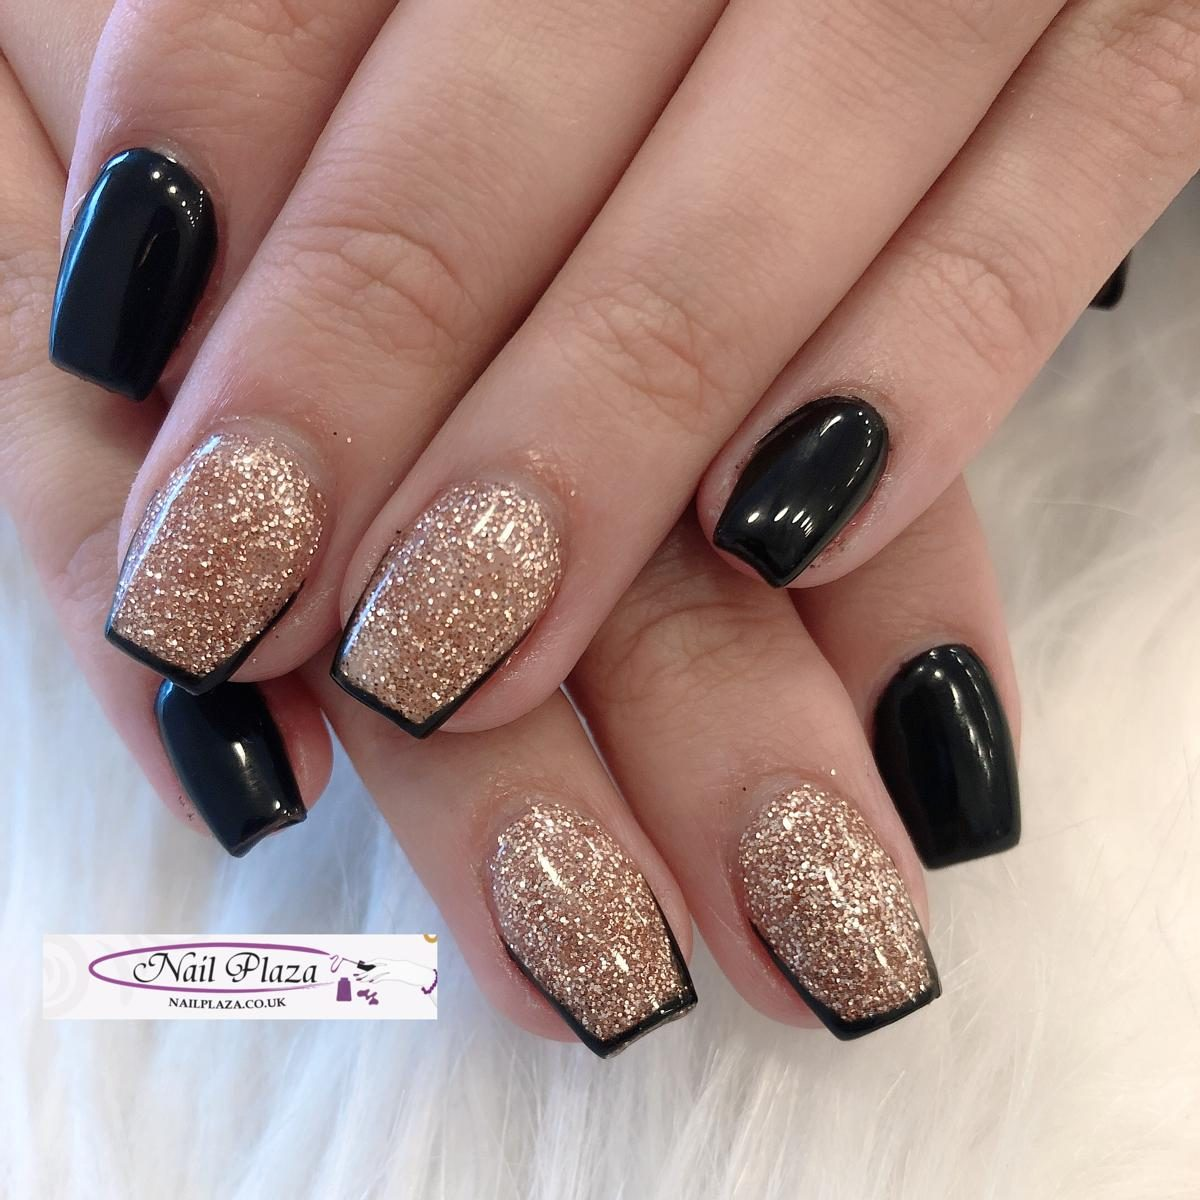 nail-plaza-twickenham-nail-design-061120-6